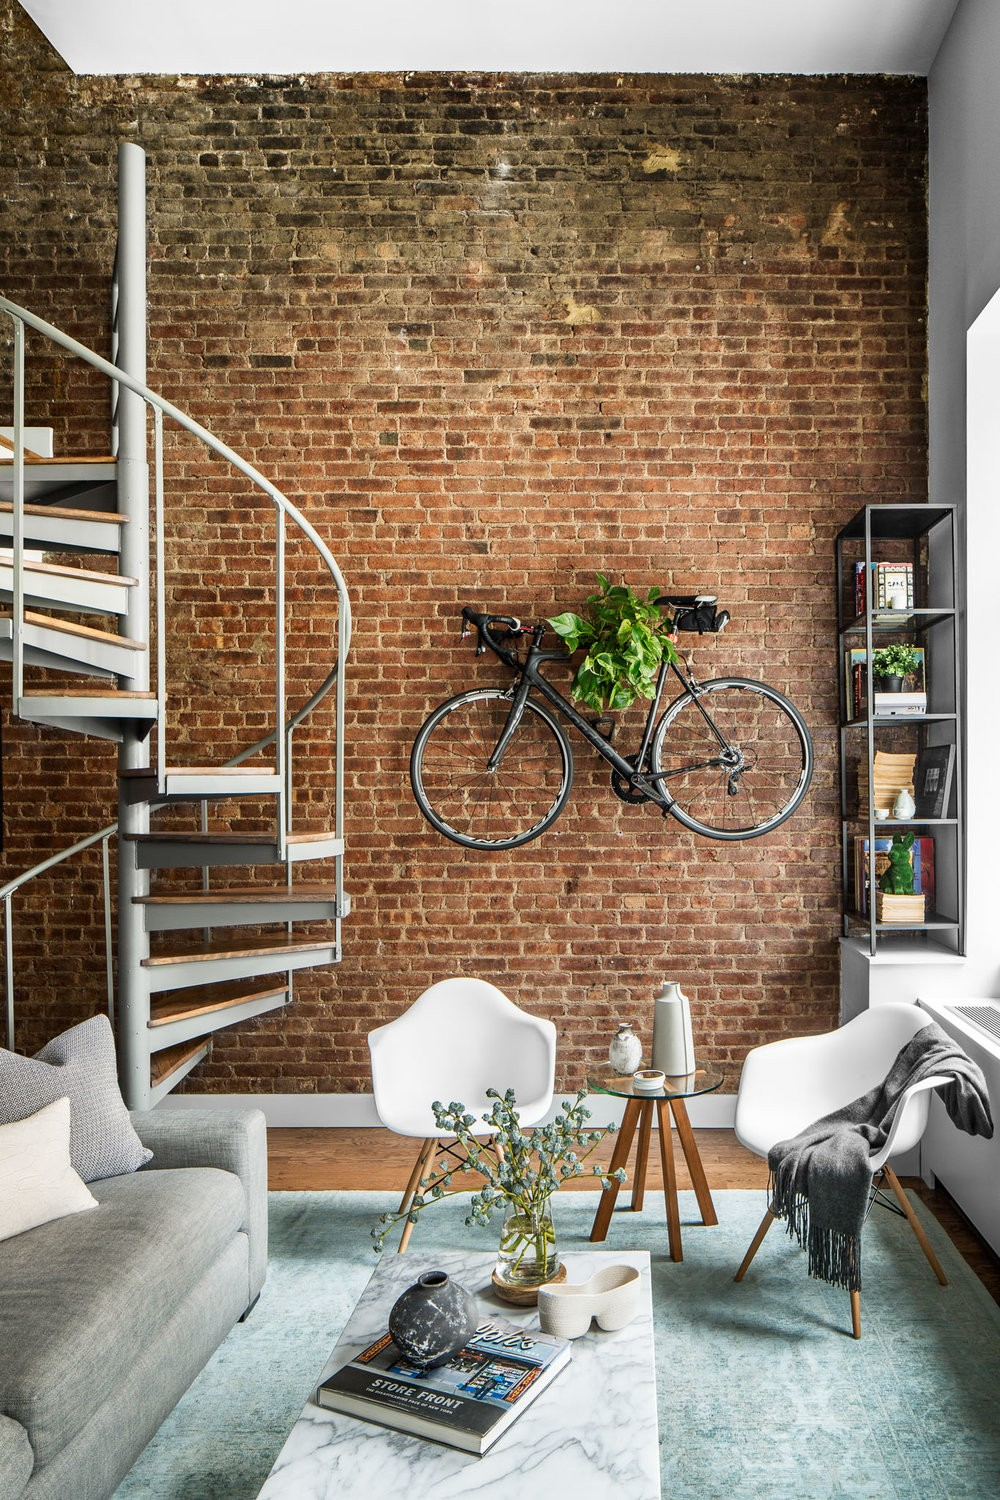 Be Inspired by a Series of Stunning New York Industrial Lofts 11 New York Industrial Lofts Be Inspired by a Series of Stunning New York Industrial Lofts Be Inspired by a Series of Stunning New York Industrial Lofts 11